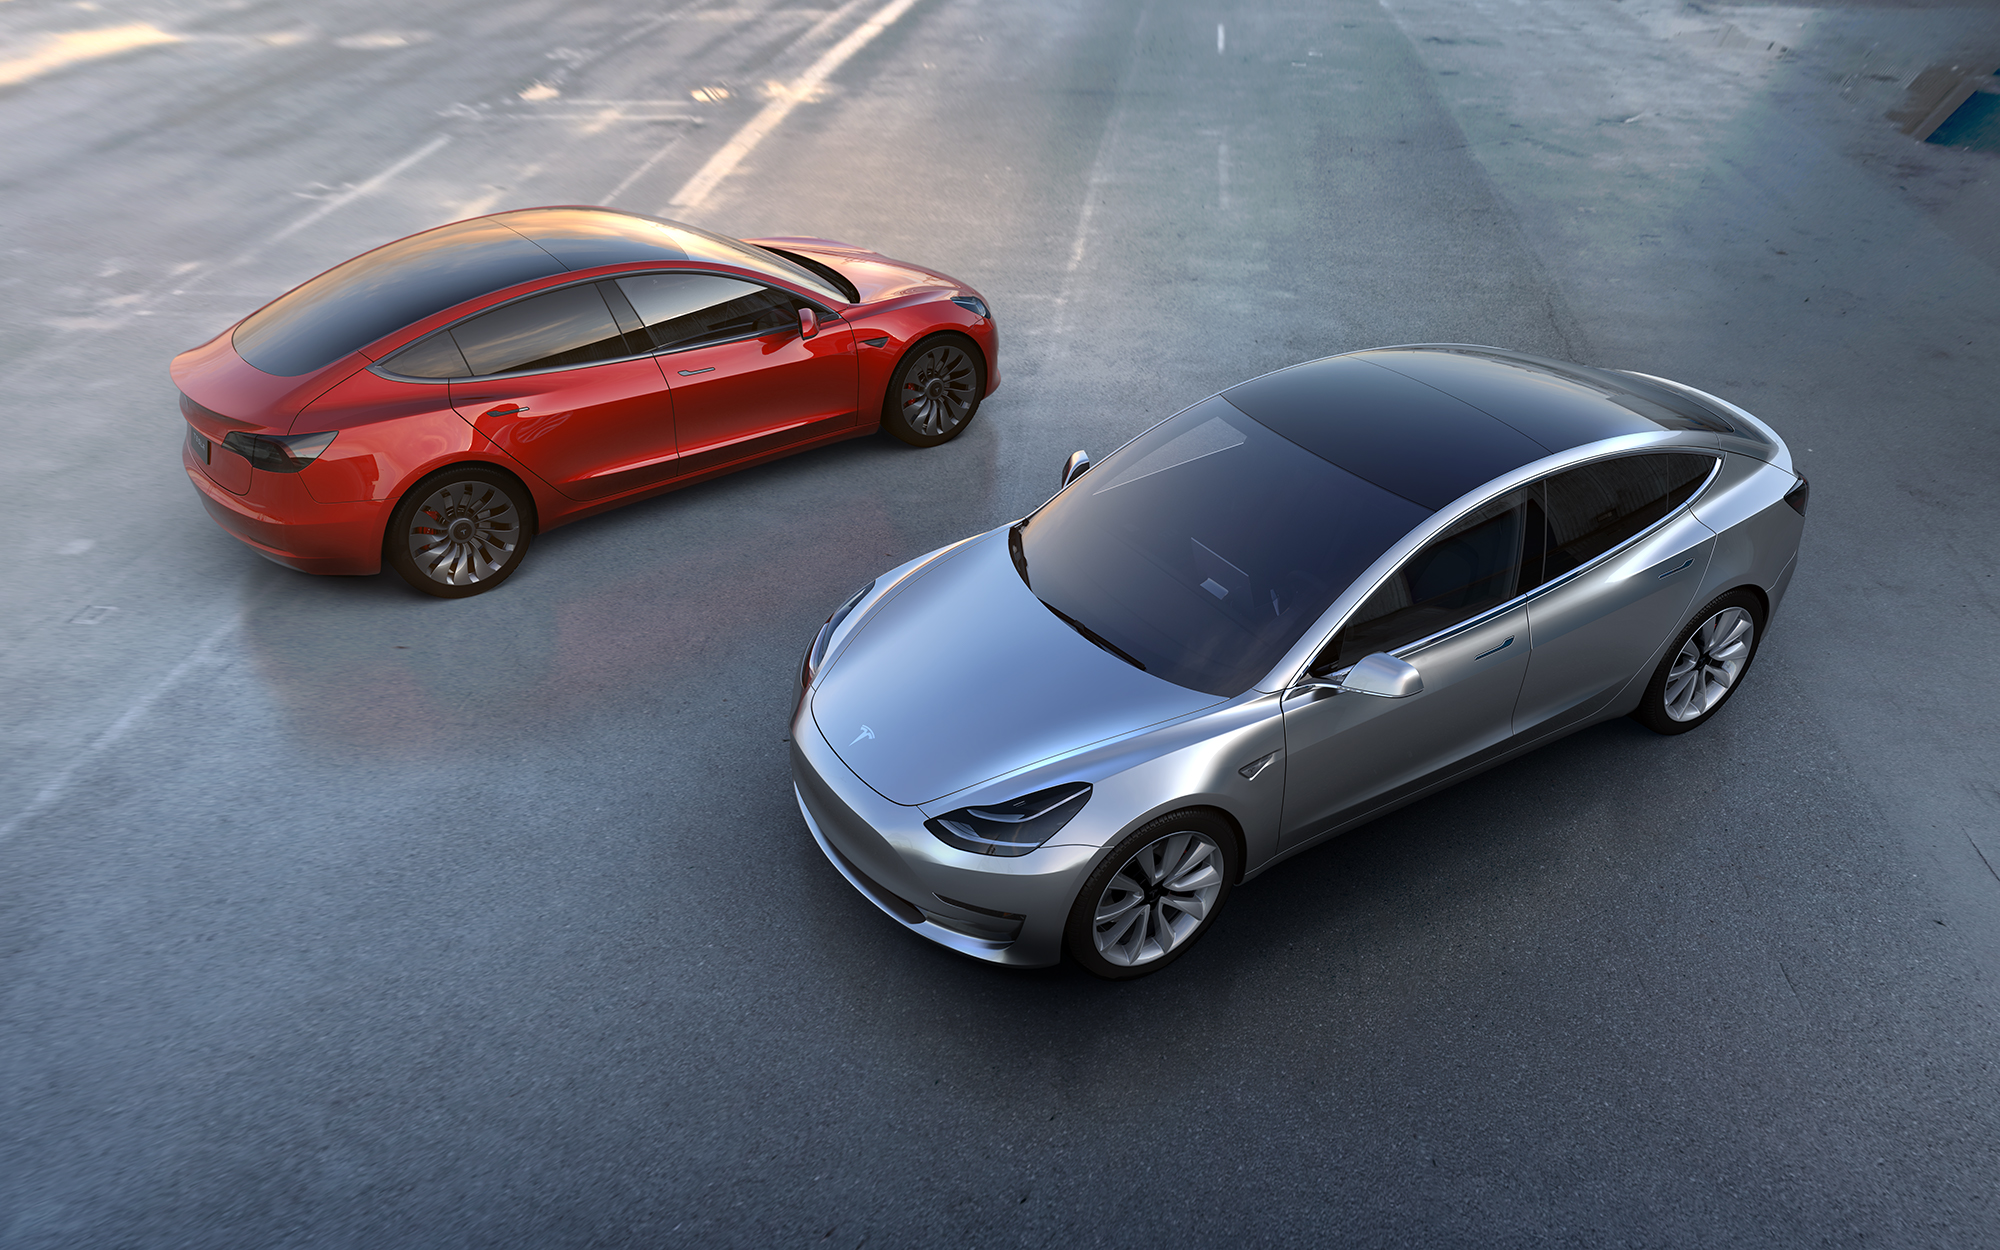 photo image Tesla fires back against claims it undercounts factory injuries as Model 3 production is halted